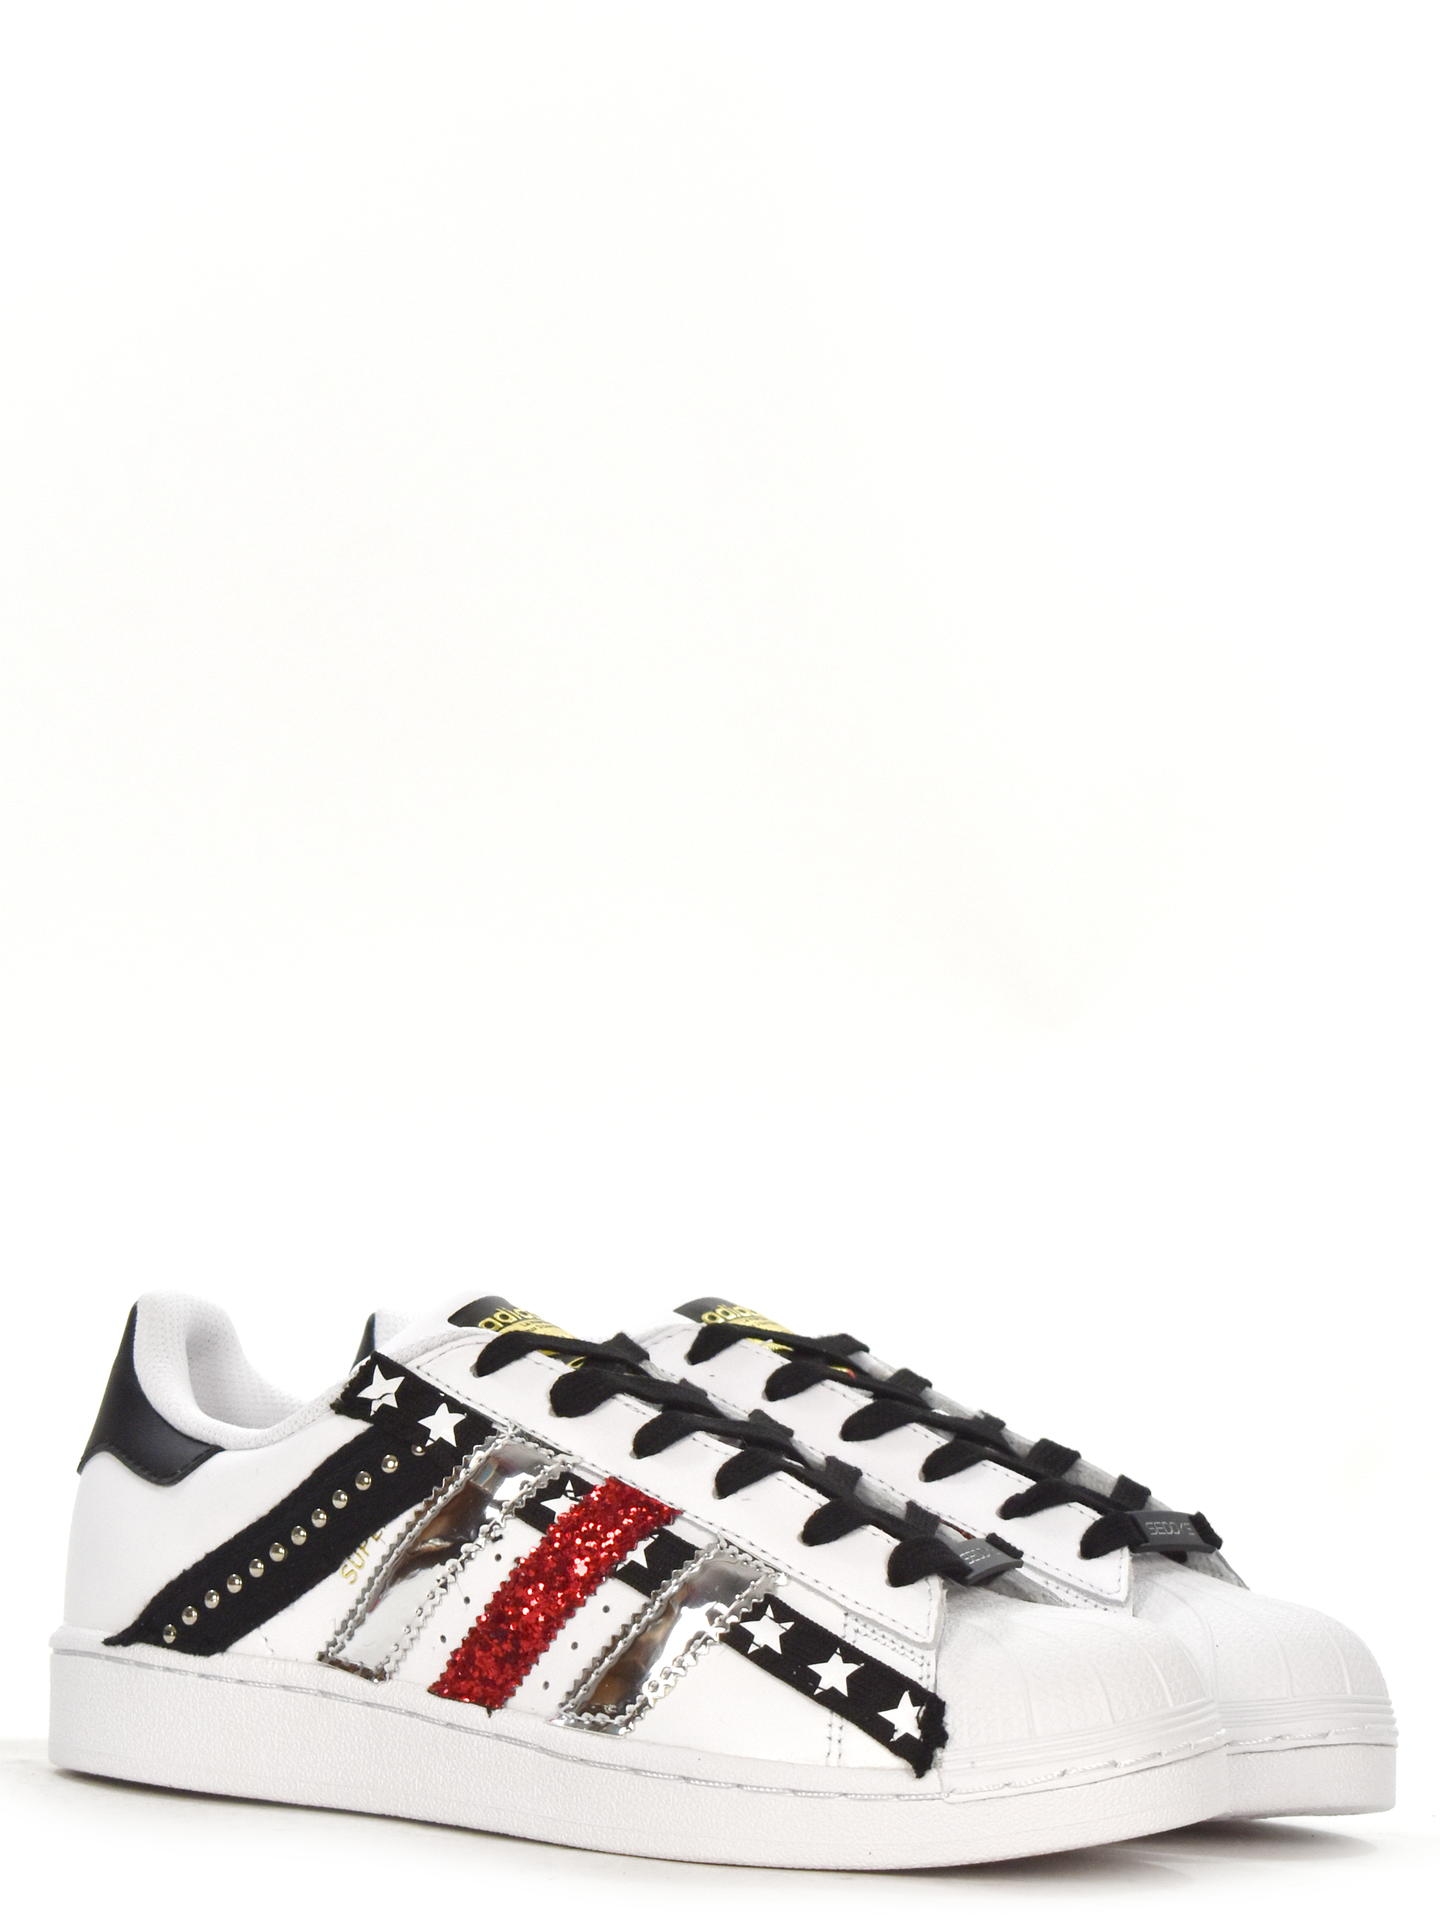 SNEAKERS ADIDAS LIMITED SUPERSTARX BIANCO